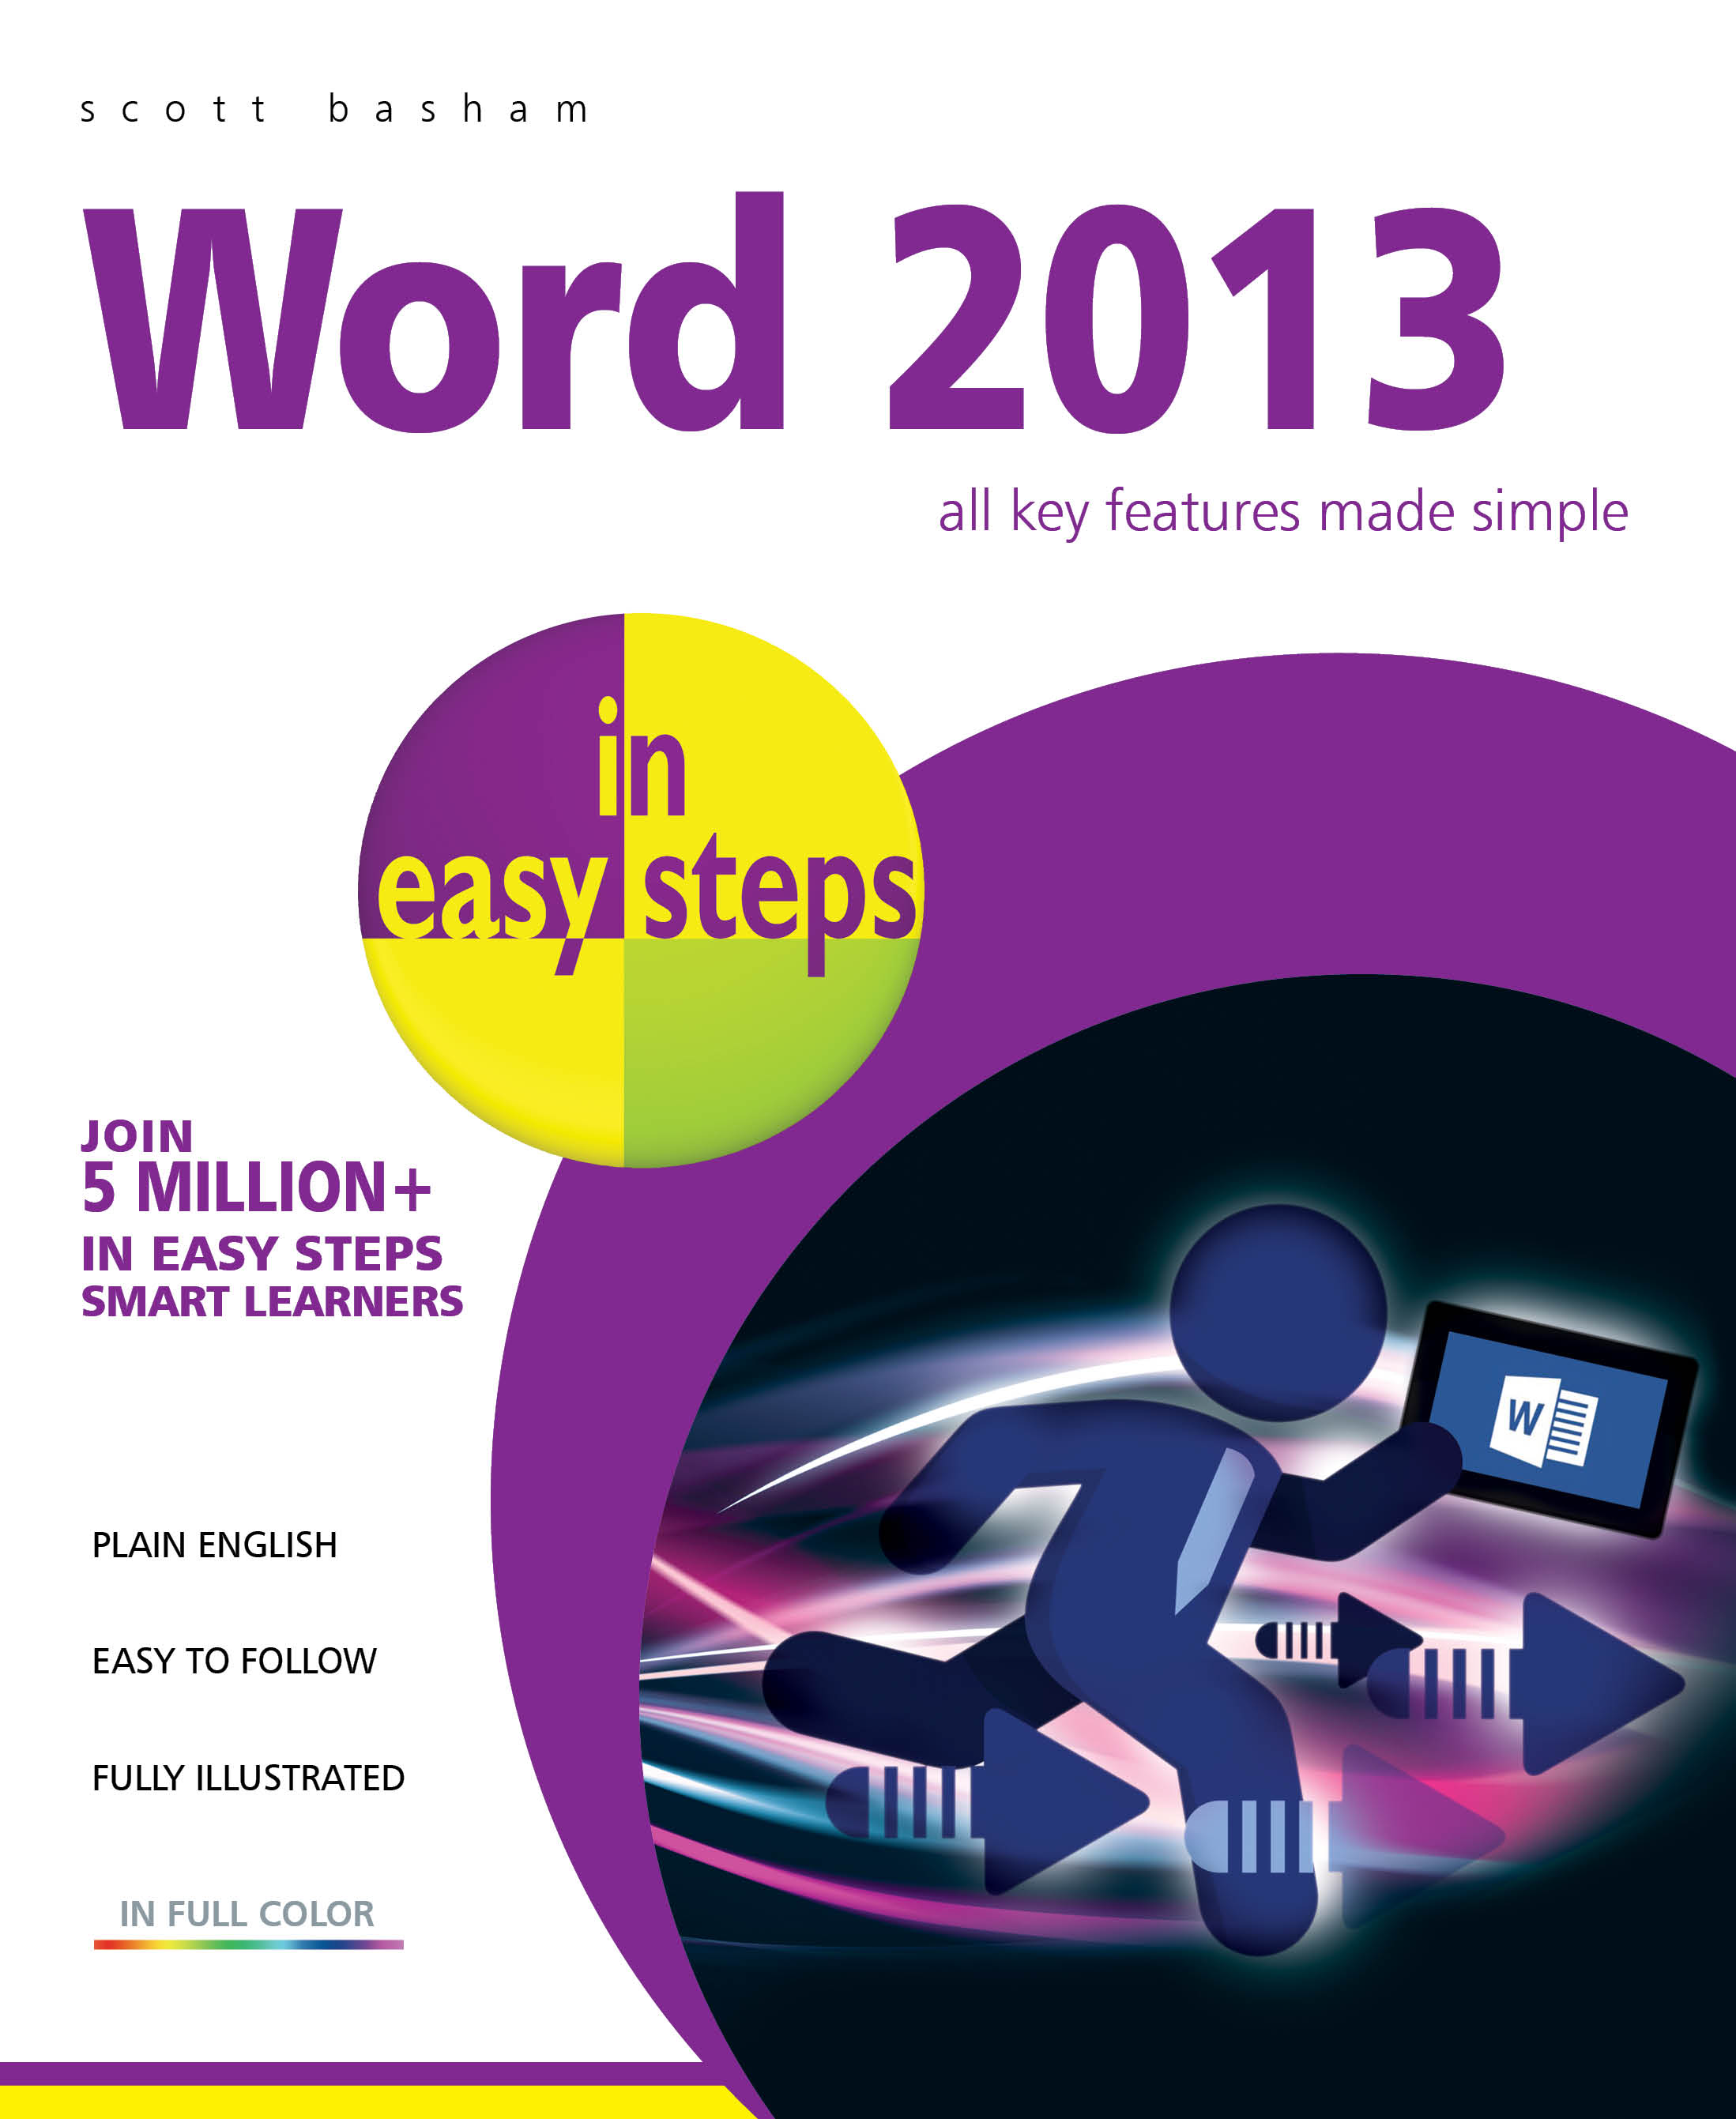 Word 2013 in easy steps PDF